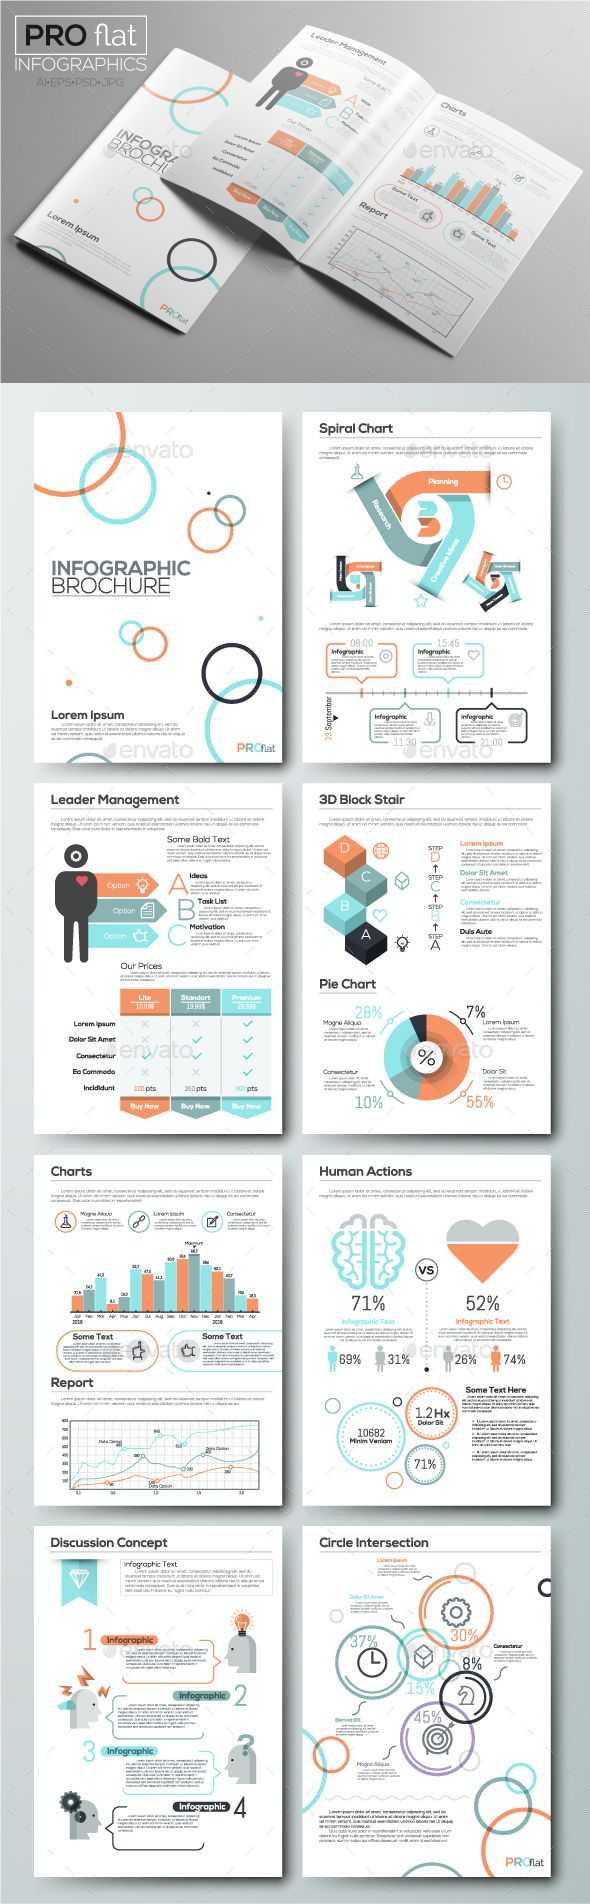 Pro Flat Infographic Brochure. Set 7 | Ai illustrator and Brochure ...